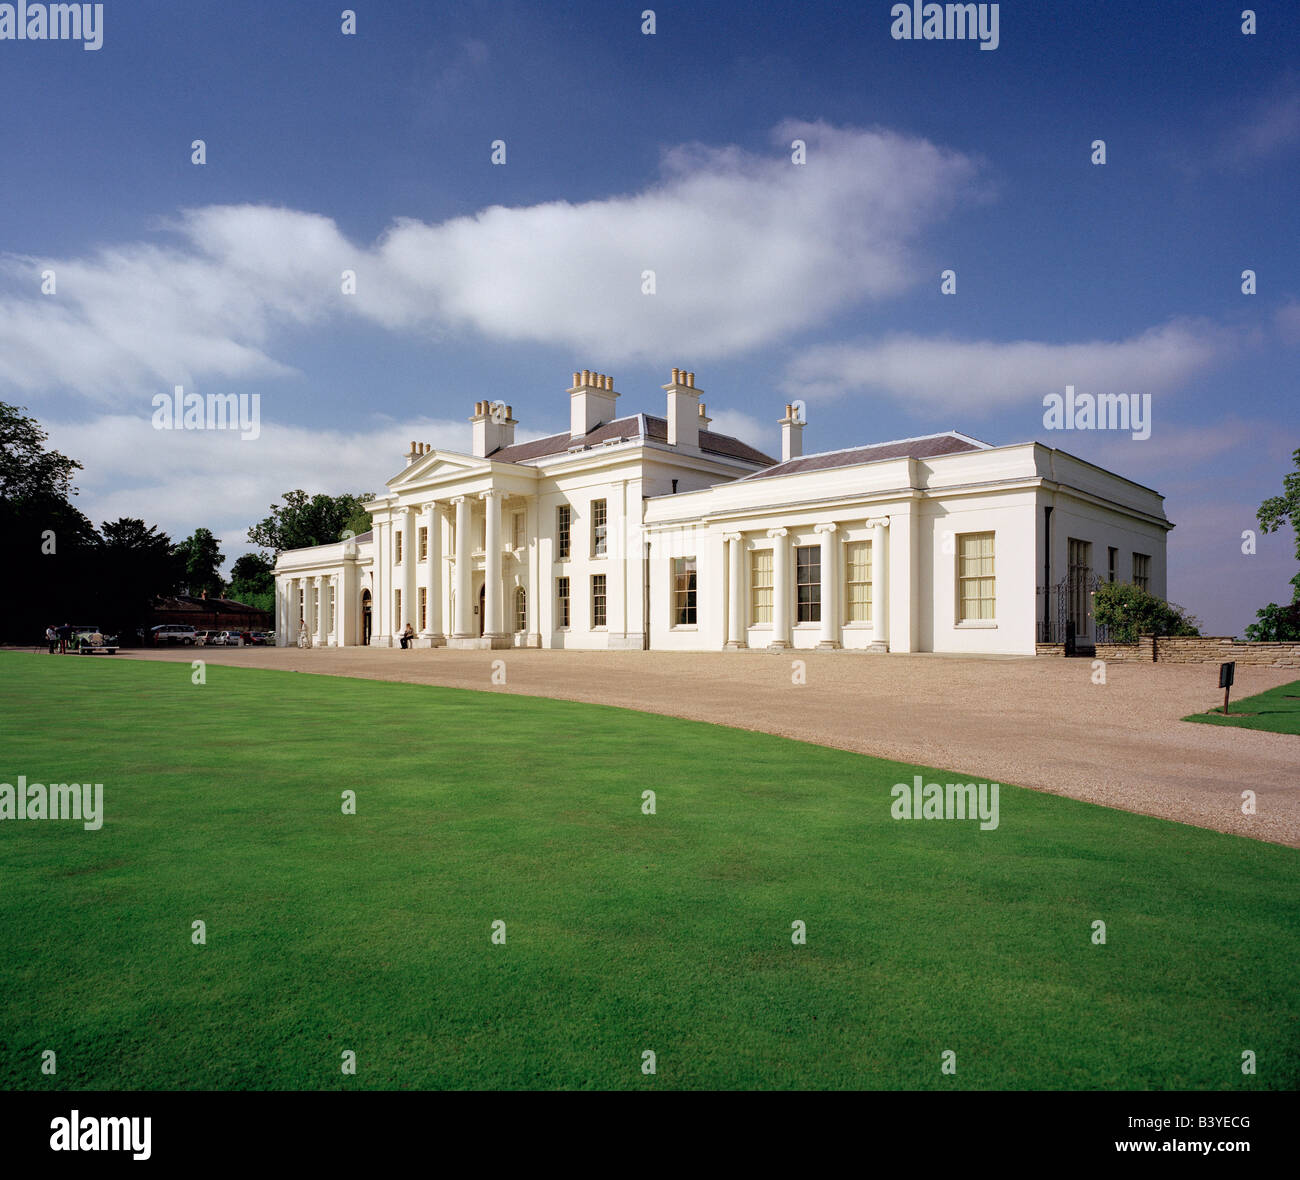 Hylands House, Chelmsford, Essex, England, UK. - Stock Image